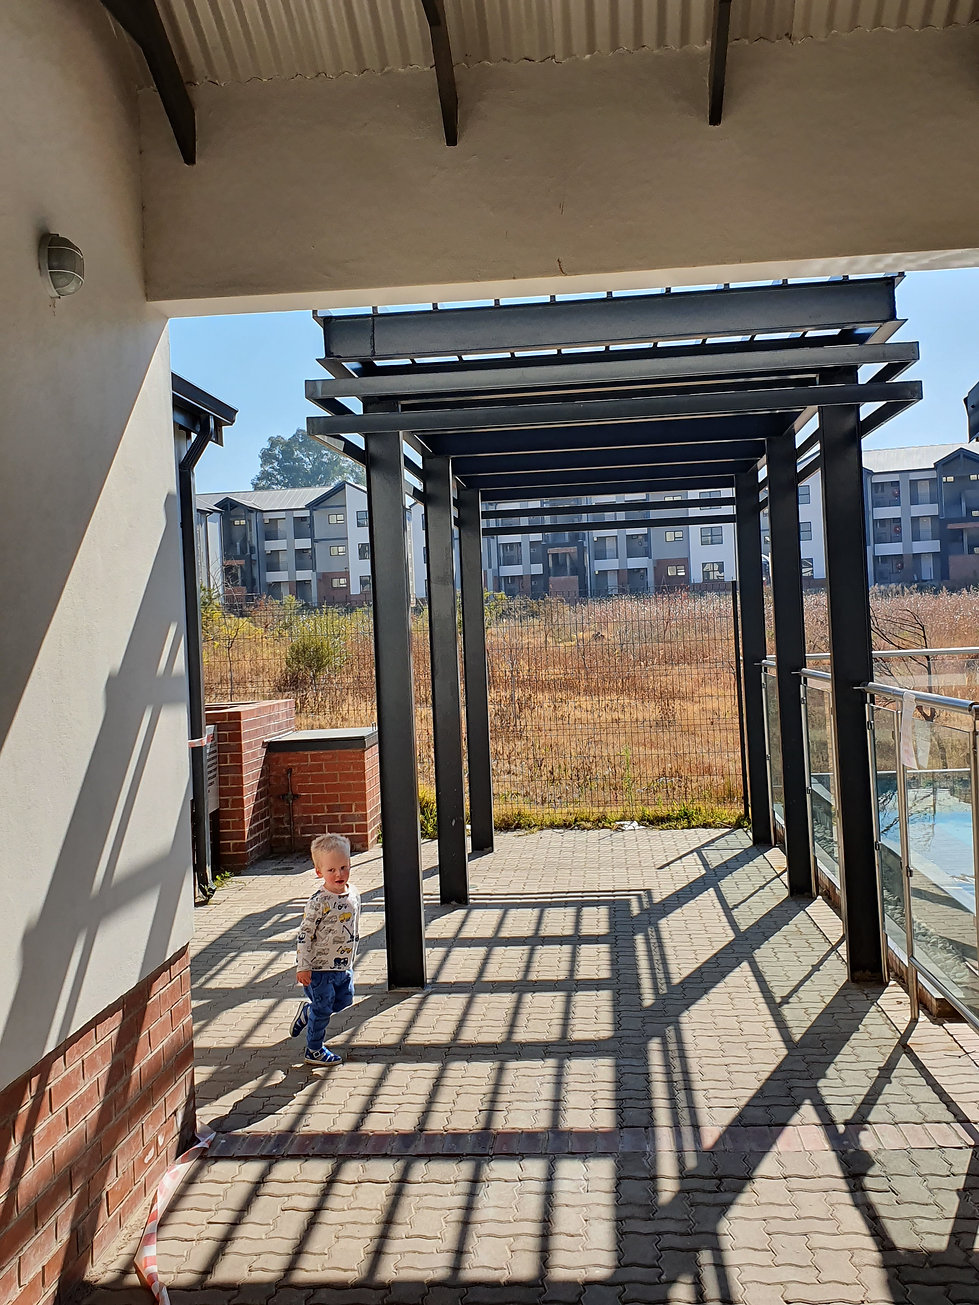 Orchid Ridge is a residential development designed by Hub Architects and is located in Orchid Ridge, Randburg, South Africa